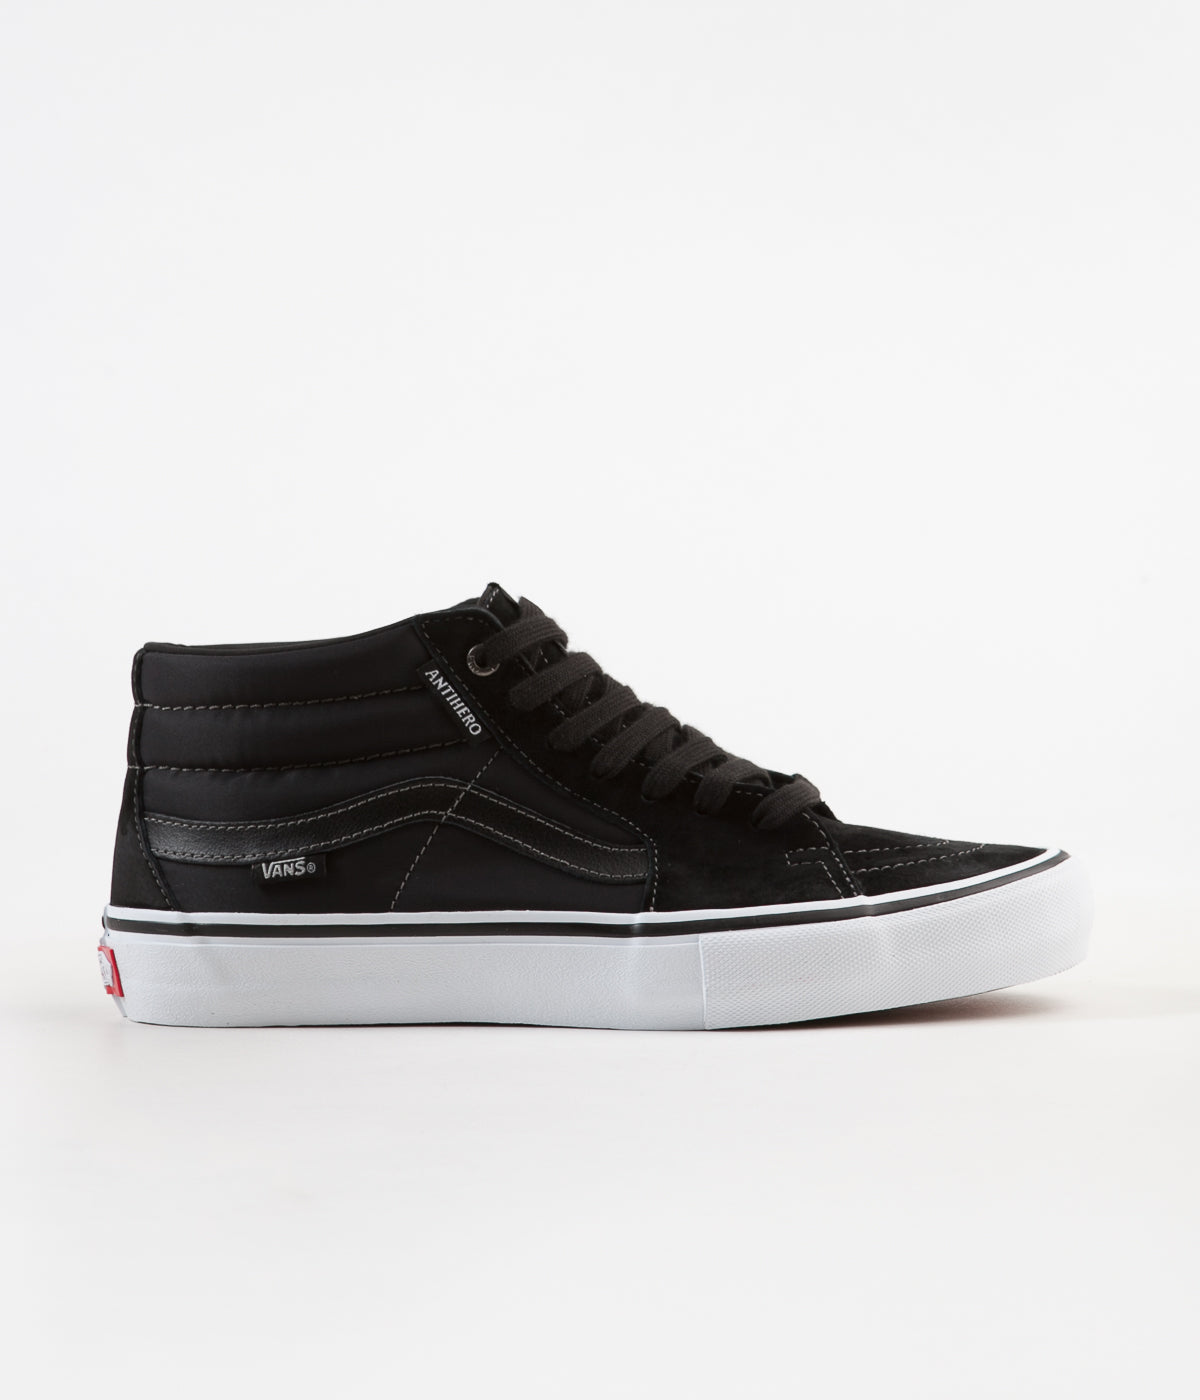 35caa4f4e4 Vans x Anti Hero Sk8-Mid Pro Shoes - Grosso   Black